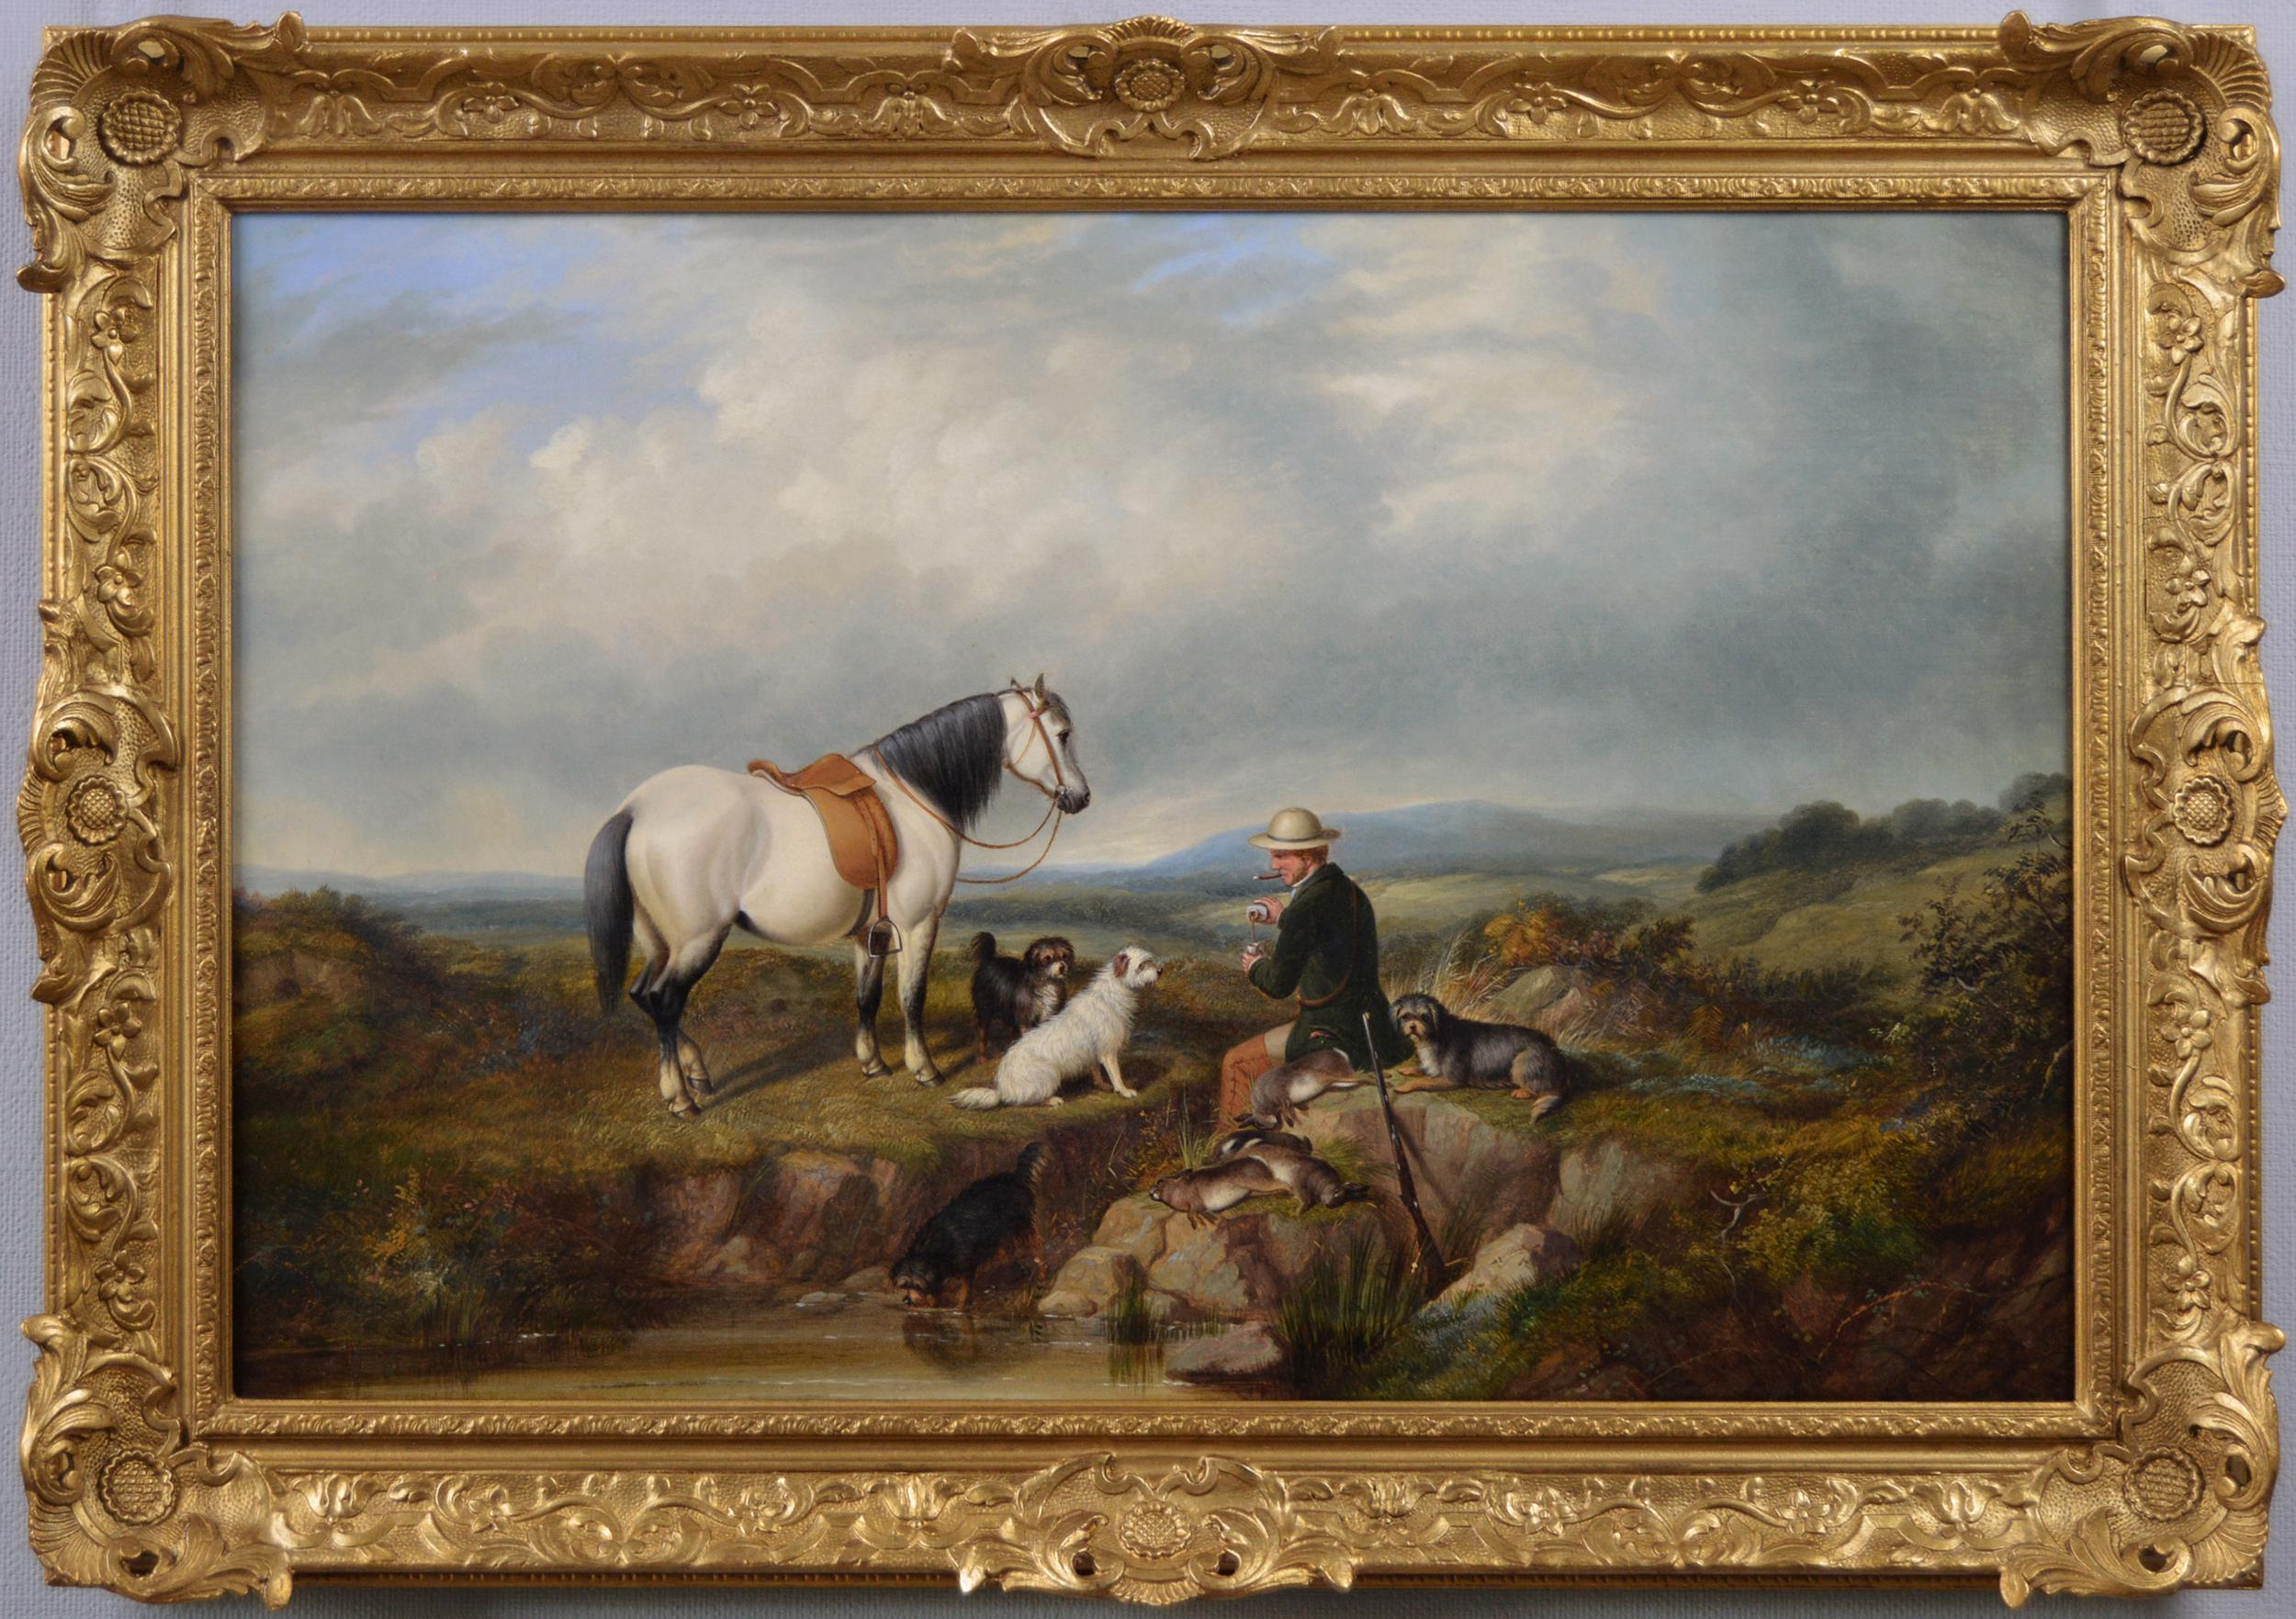 19th Century sporting landscape oil painting with horse, dogs & game